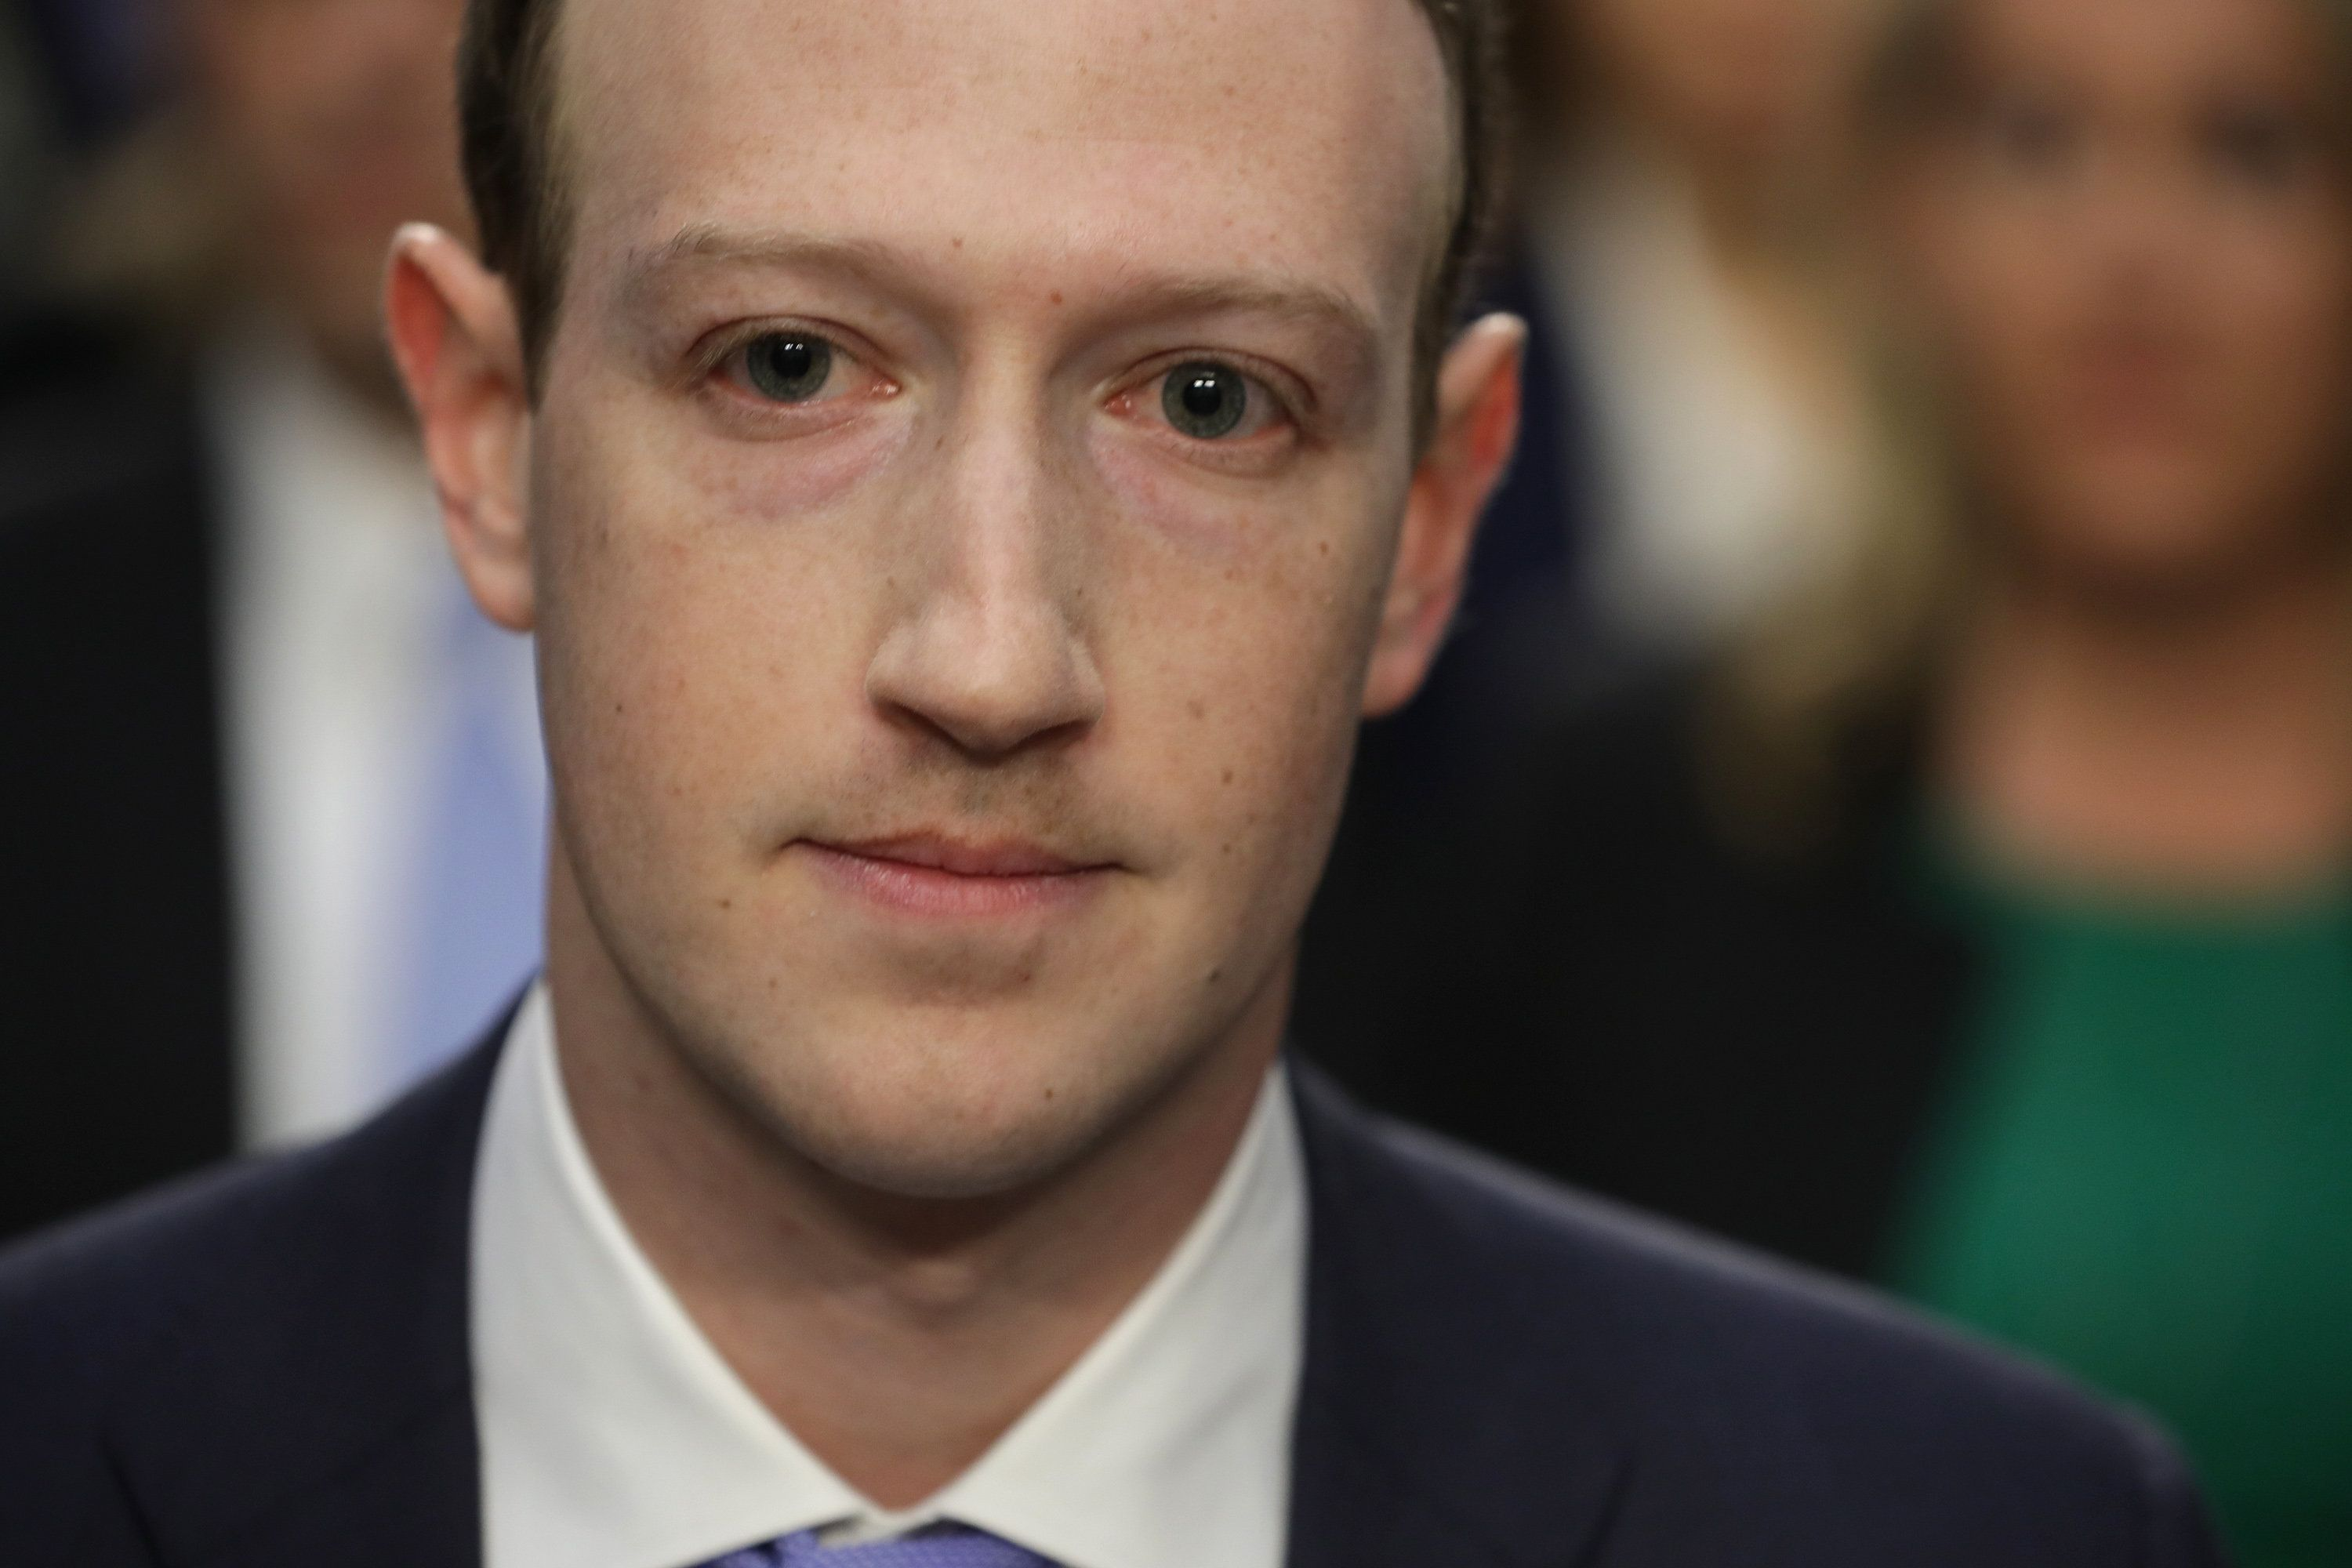 Mark Zuckerburg's Testimony To Congress Mocked For Confused Questions And That Resting